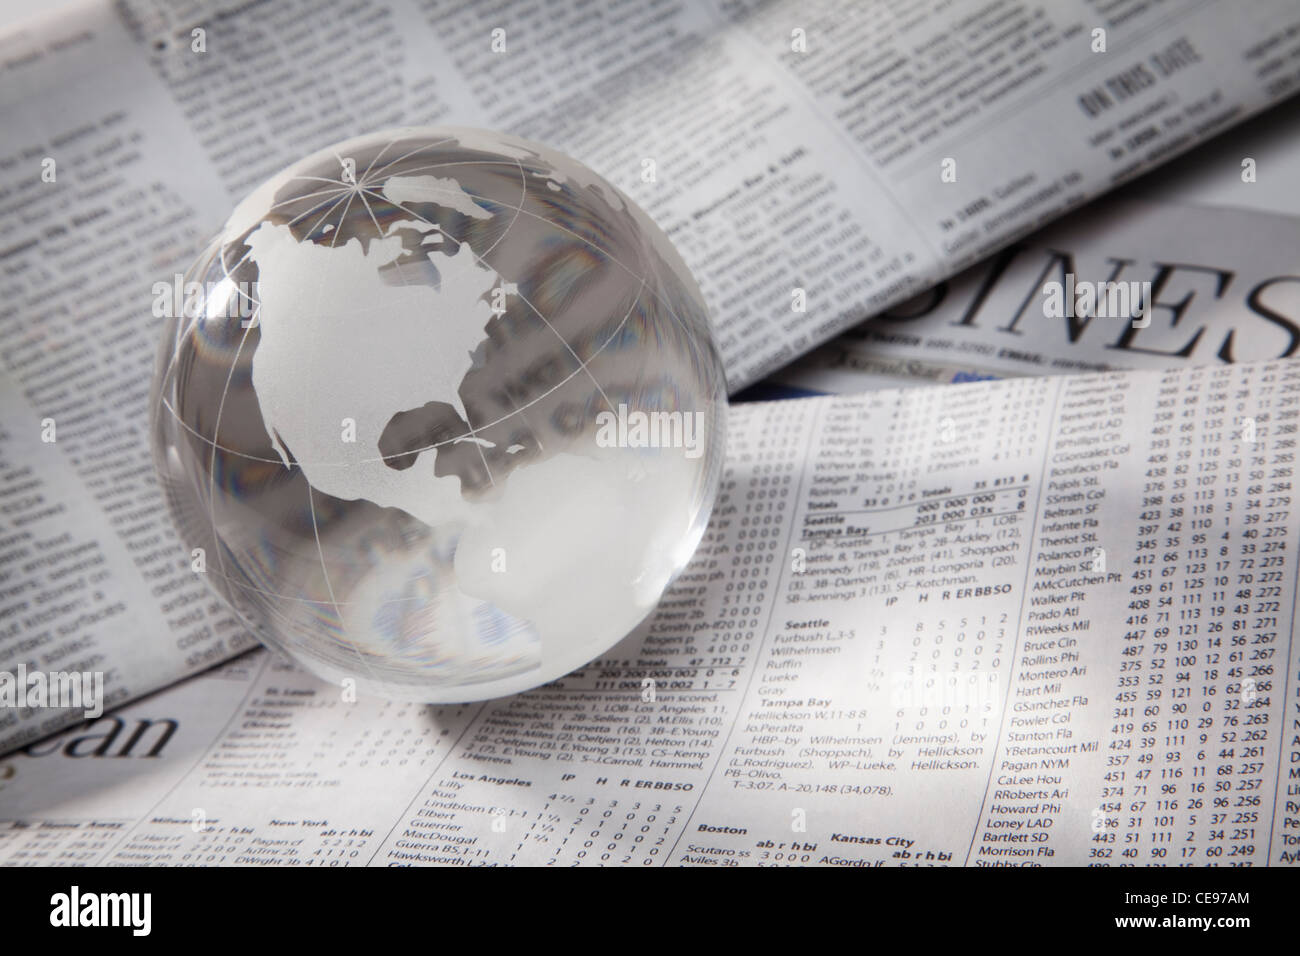 Studio shot of globe on financial pages - Stock Image